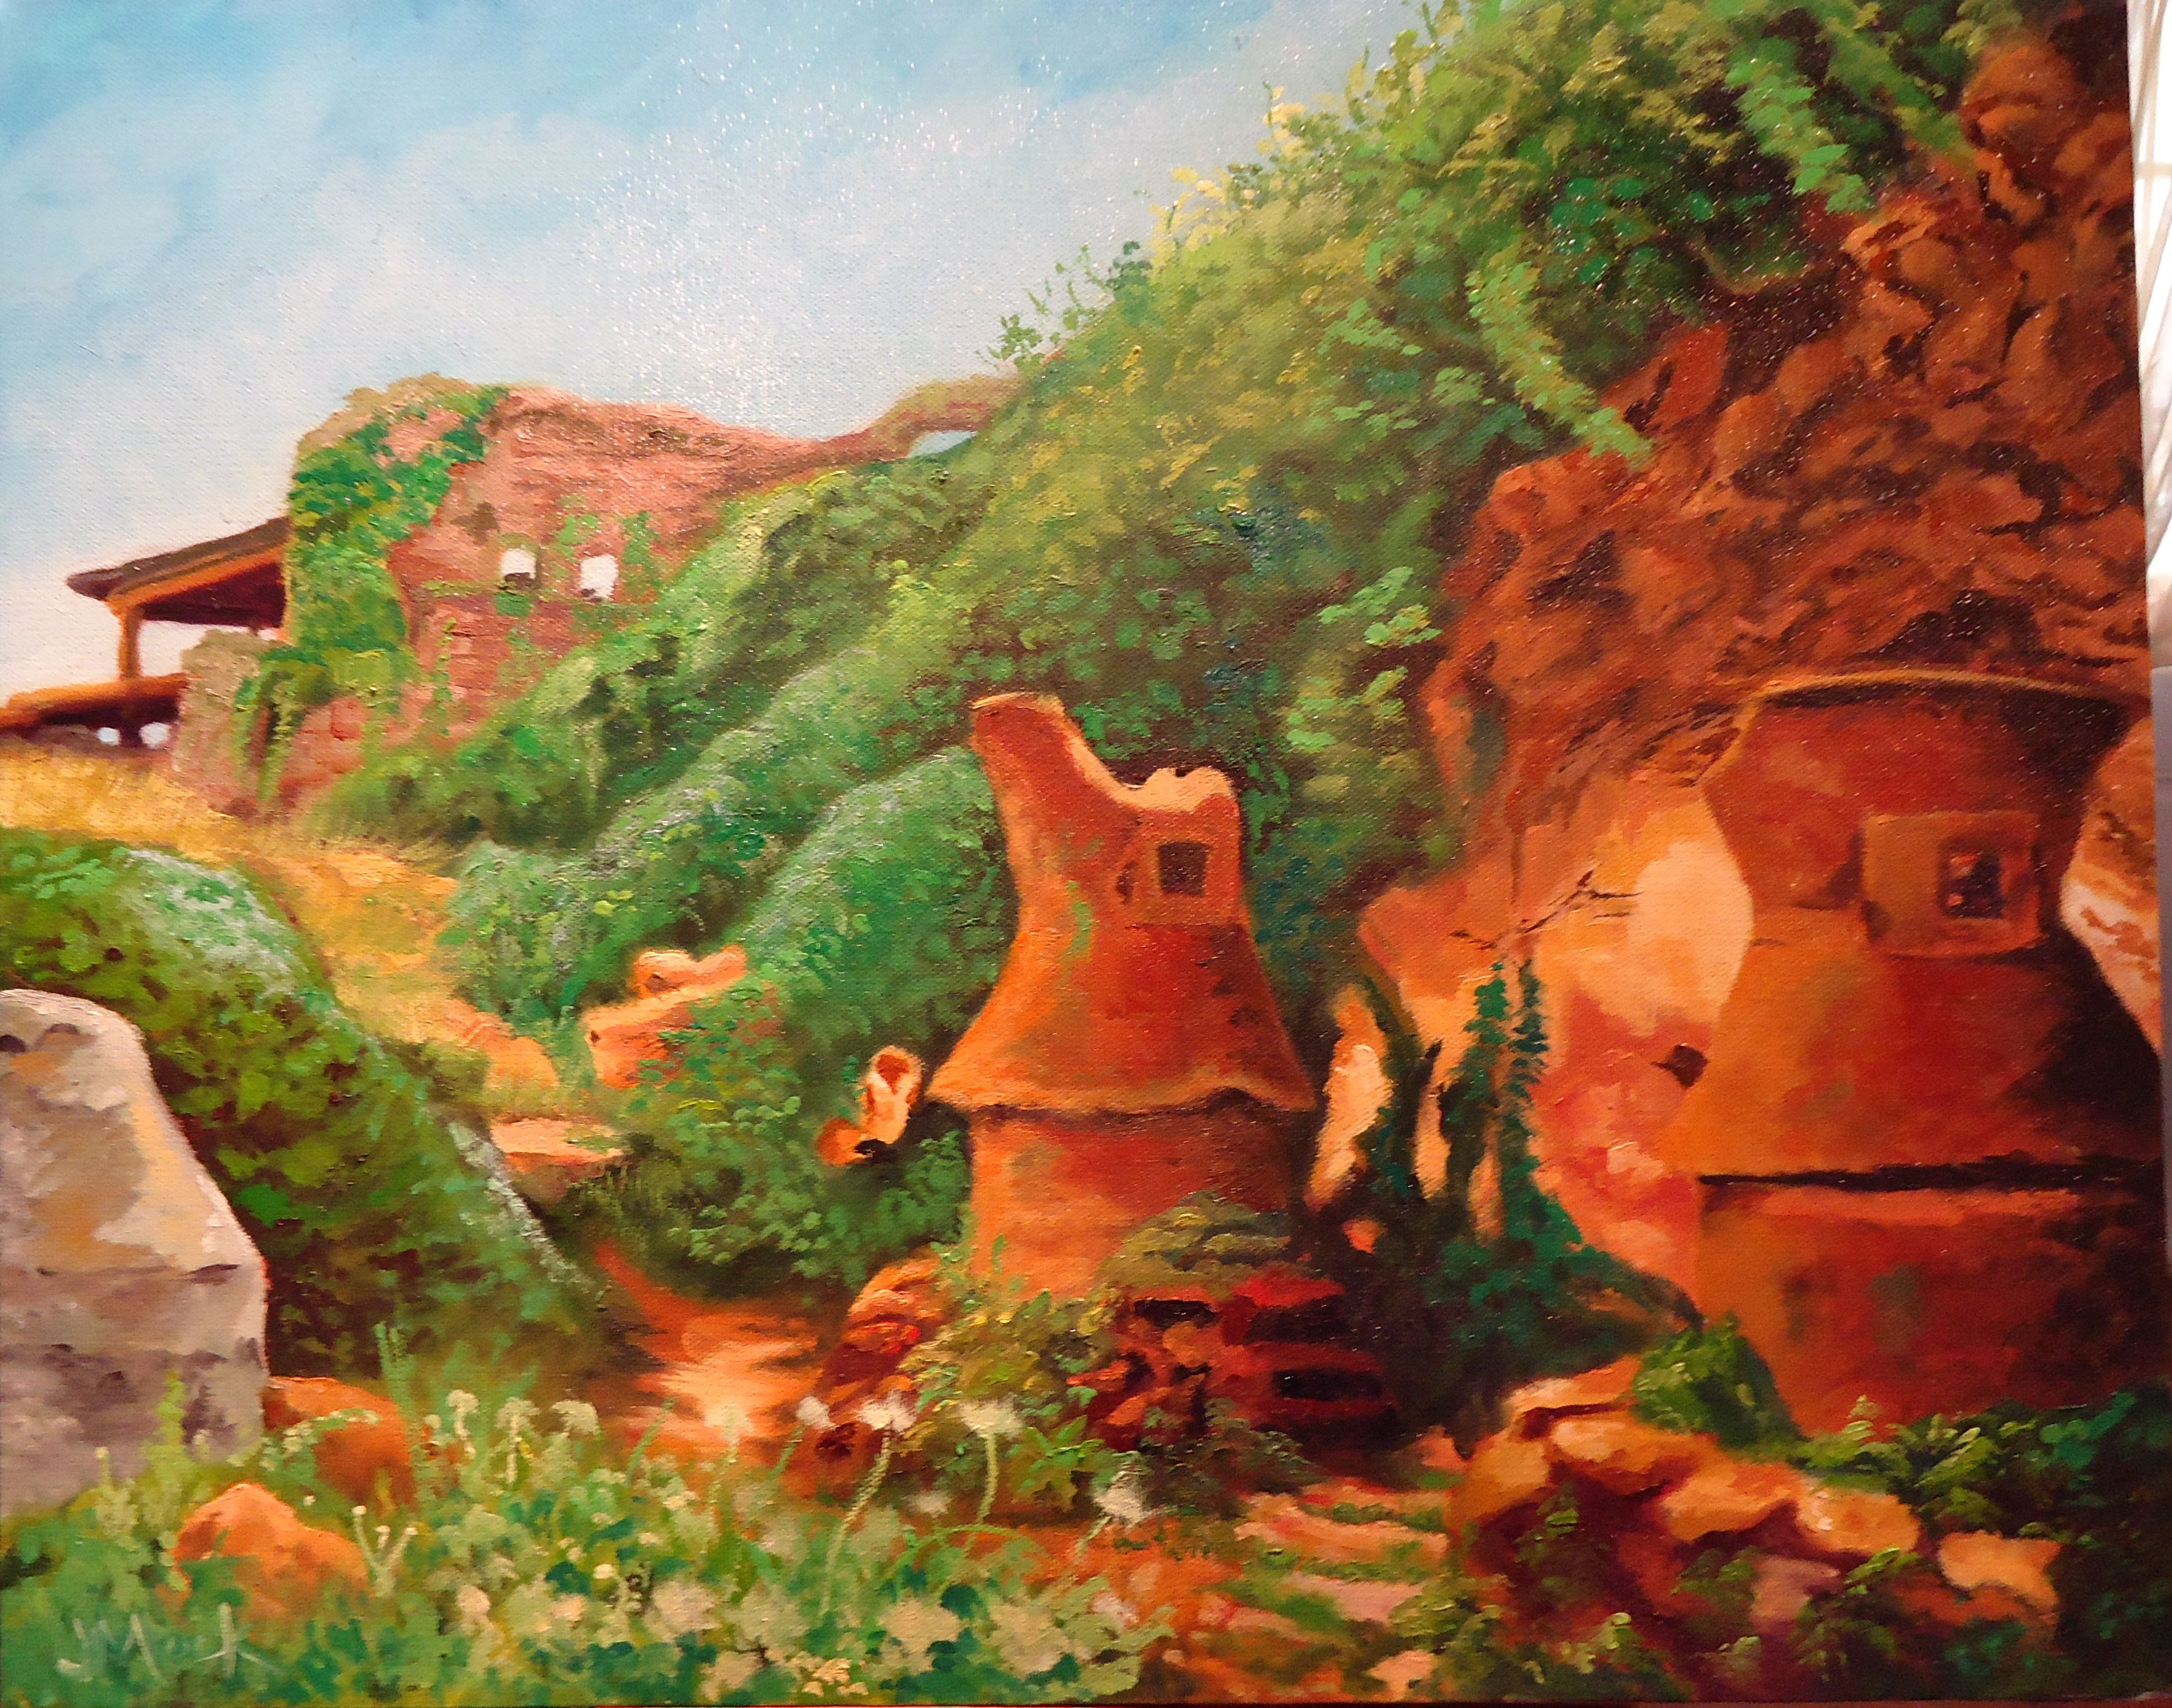 Pompeii Ovens. Oil painting on 16x20 canvas from a photograph I took several years ago while visiting the ruins.